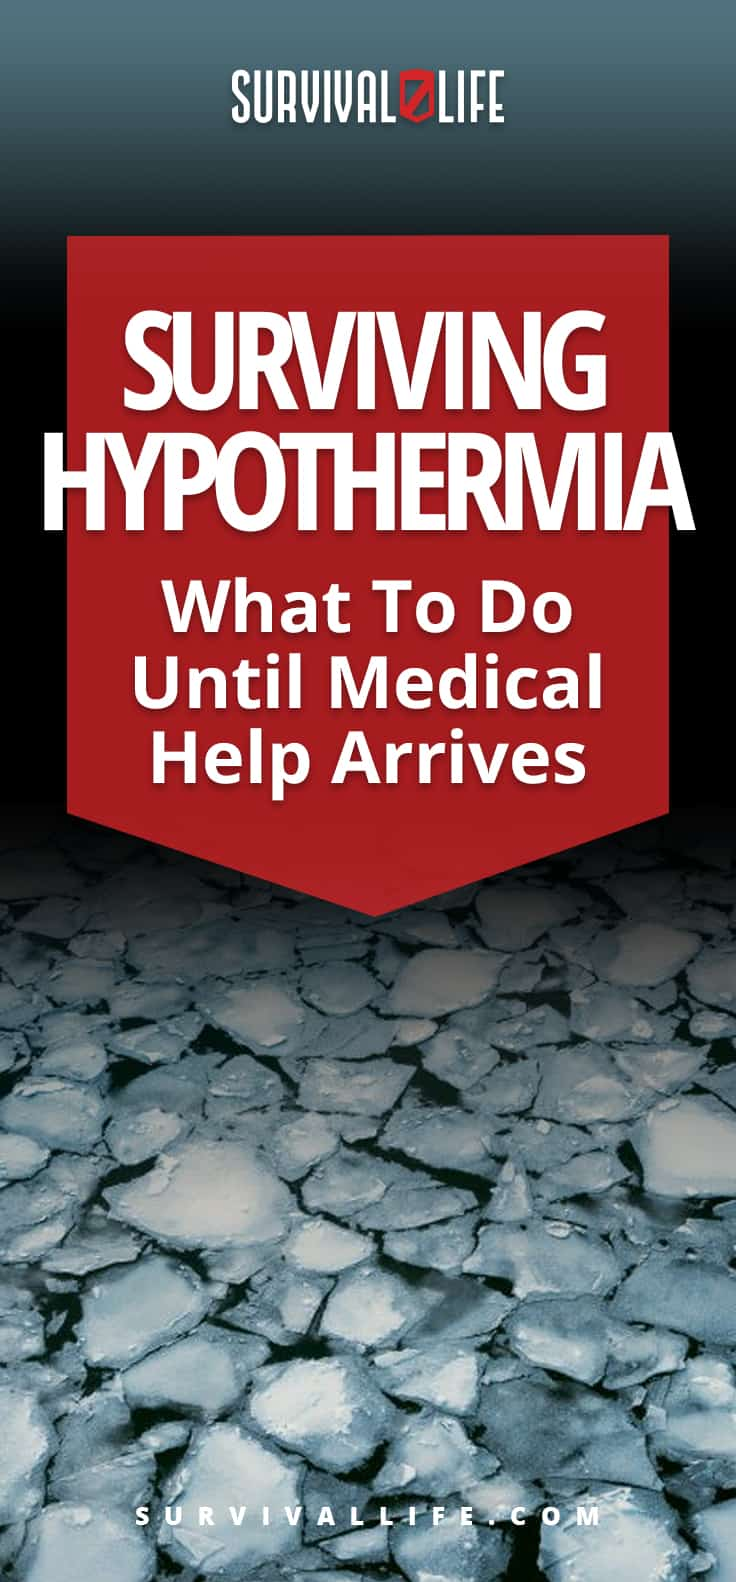 Check out Surviving Hypothermia: What To Do Until Medical Help Arrives at https://survivallife.com/survive-hypothermia/